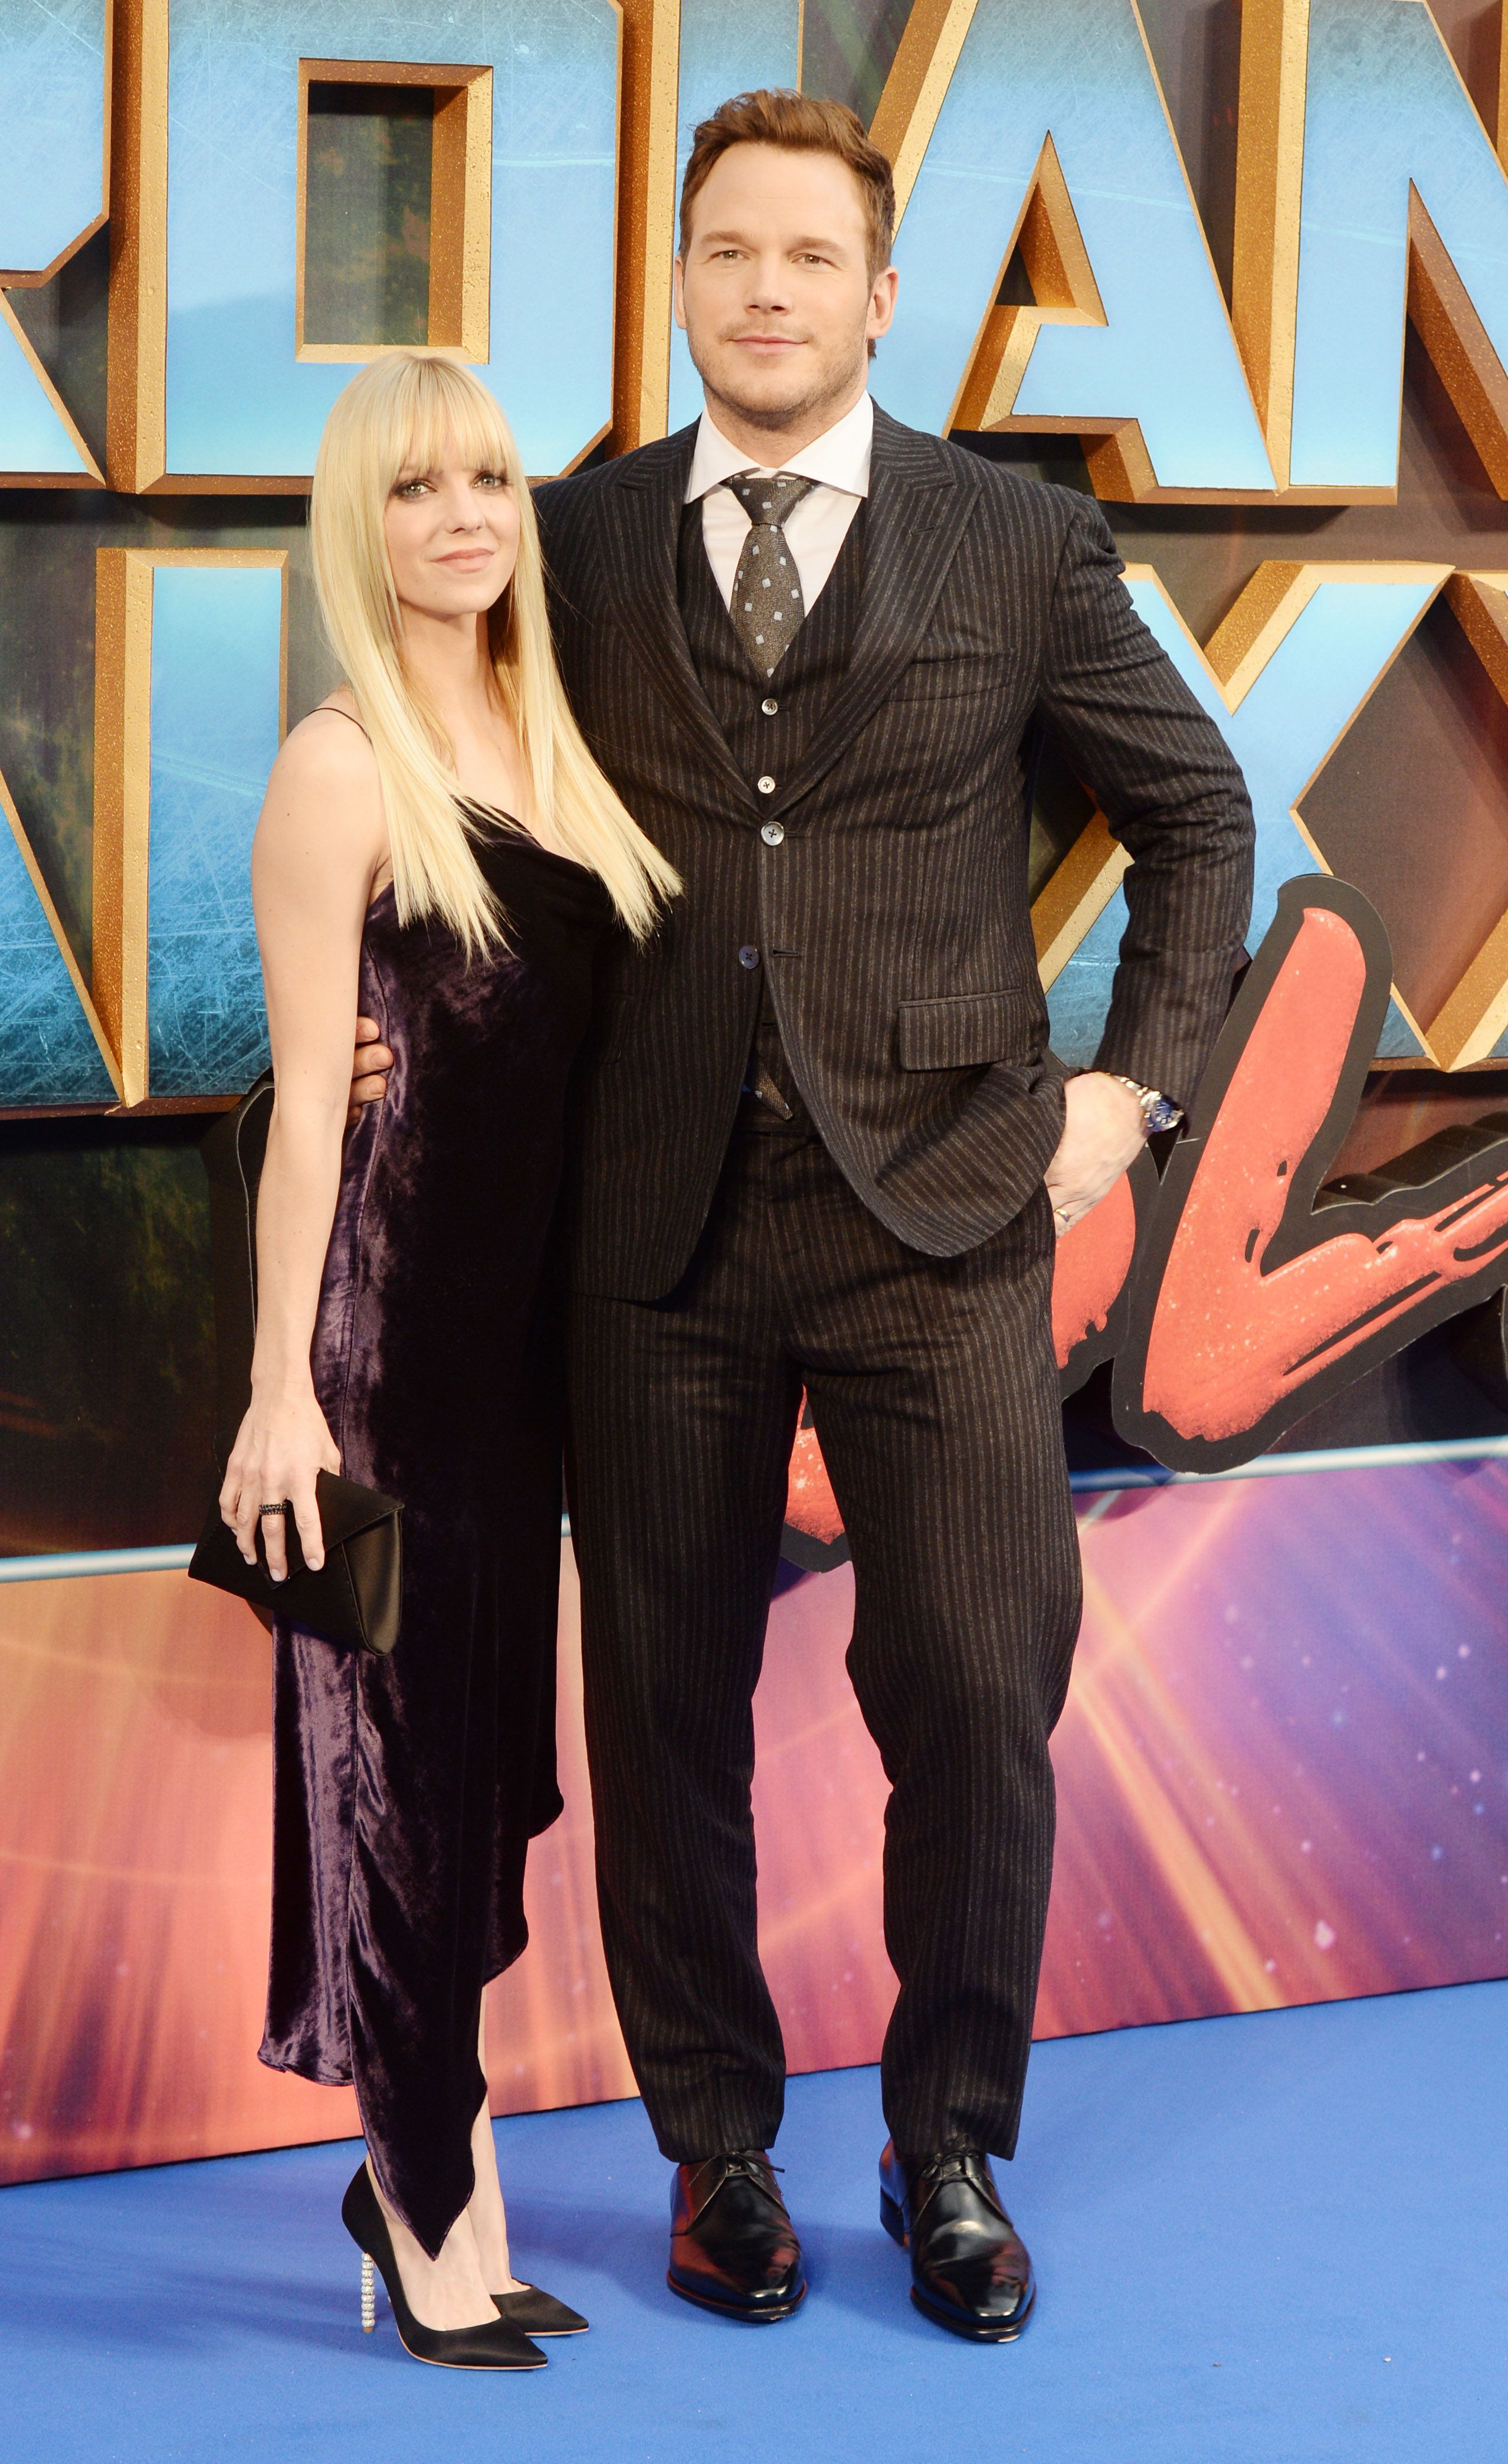 Anna Faris Reacts To Chris Pratt's Engagement With Nothing But